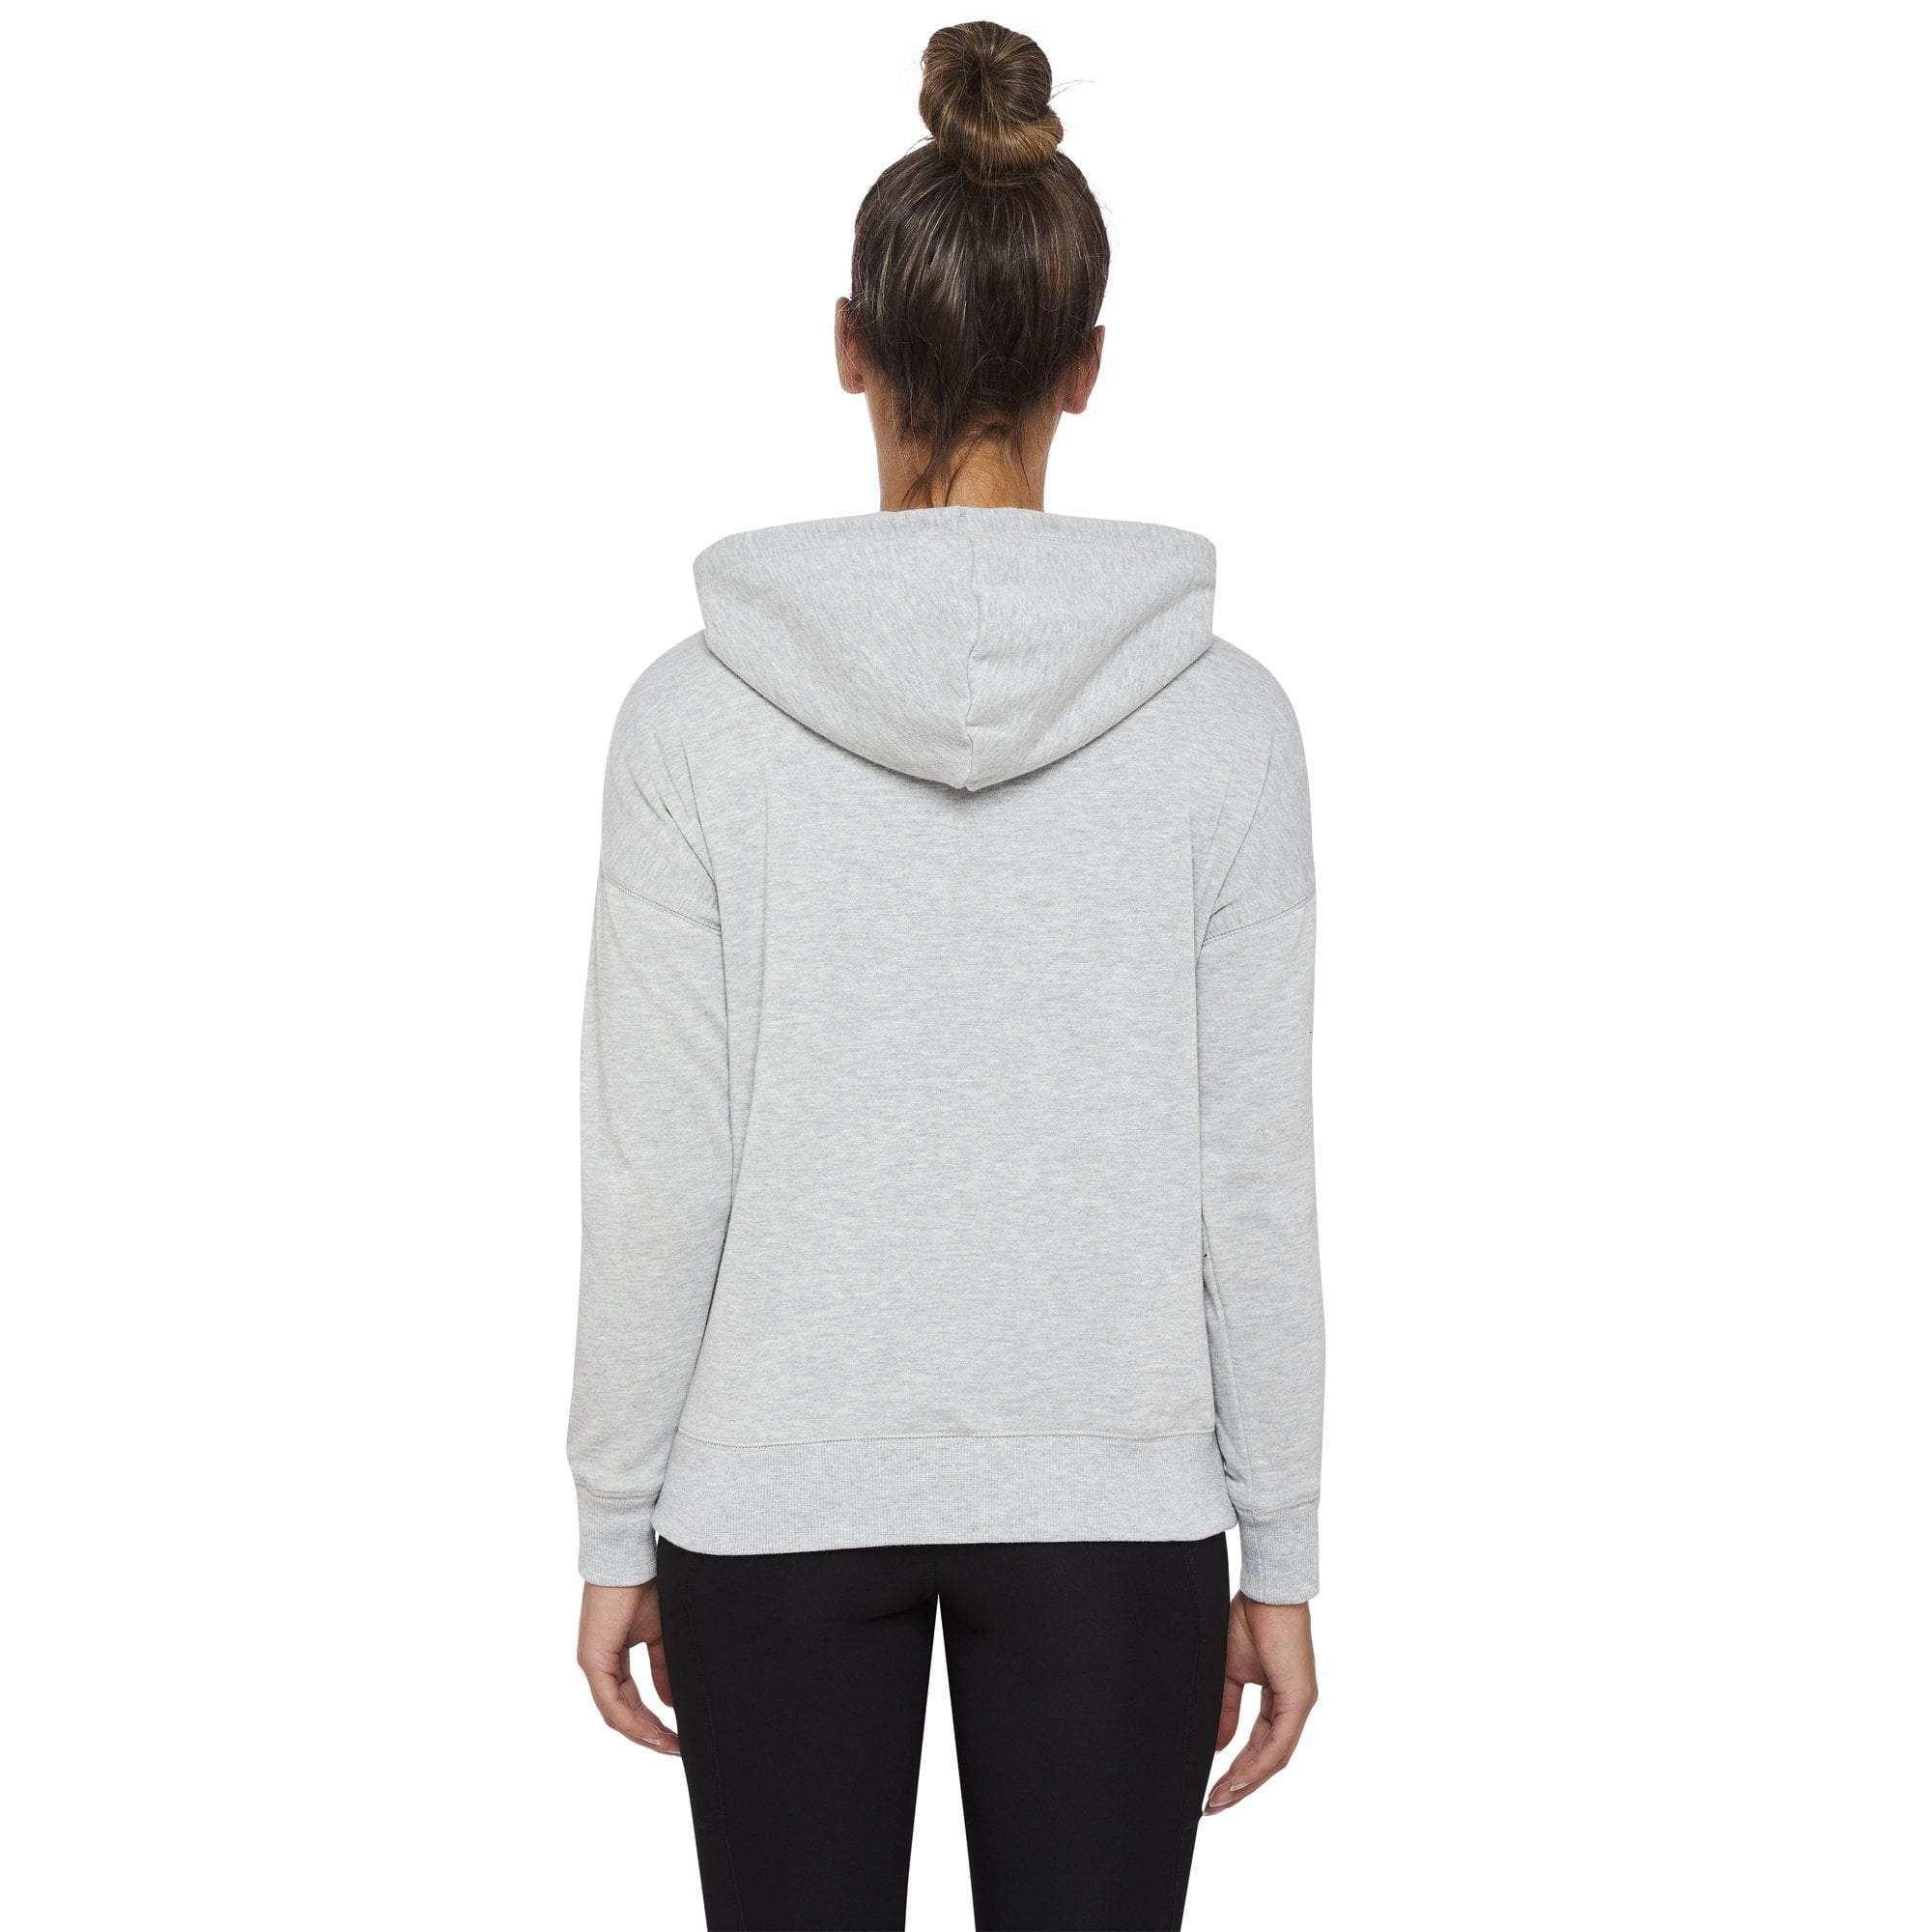 INSPORT ATHLETIC APPAREL WOMEN'S HELENA GREY HOODIE